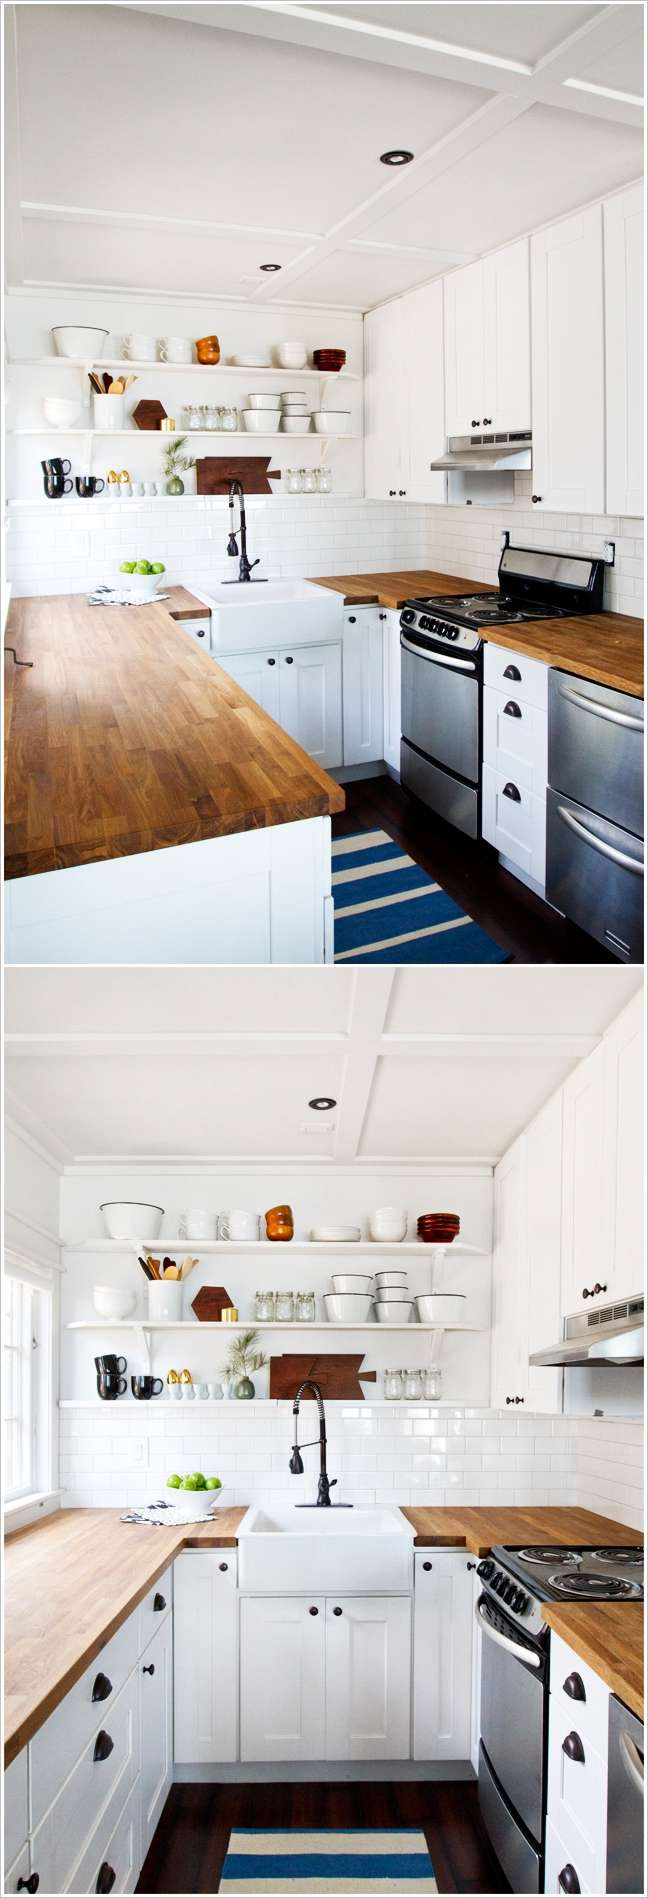 15 Fabulous U-Shaped Kitchen Designs That Will Inspire You